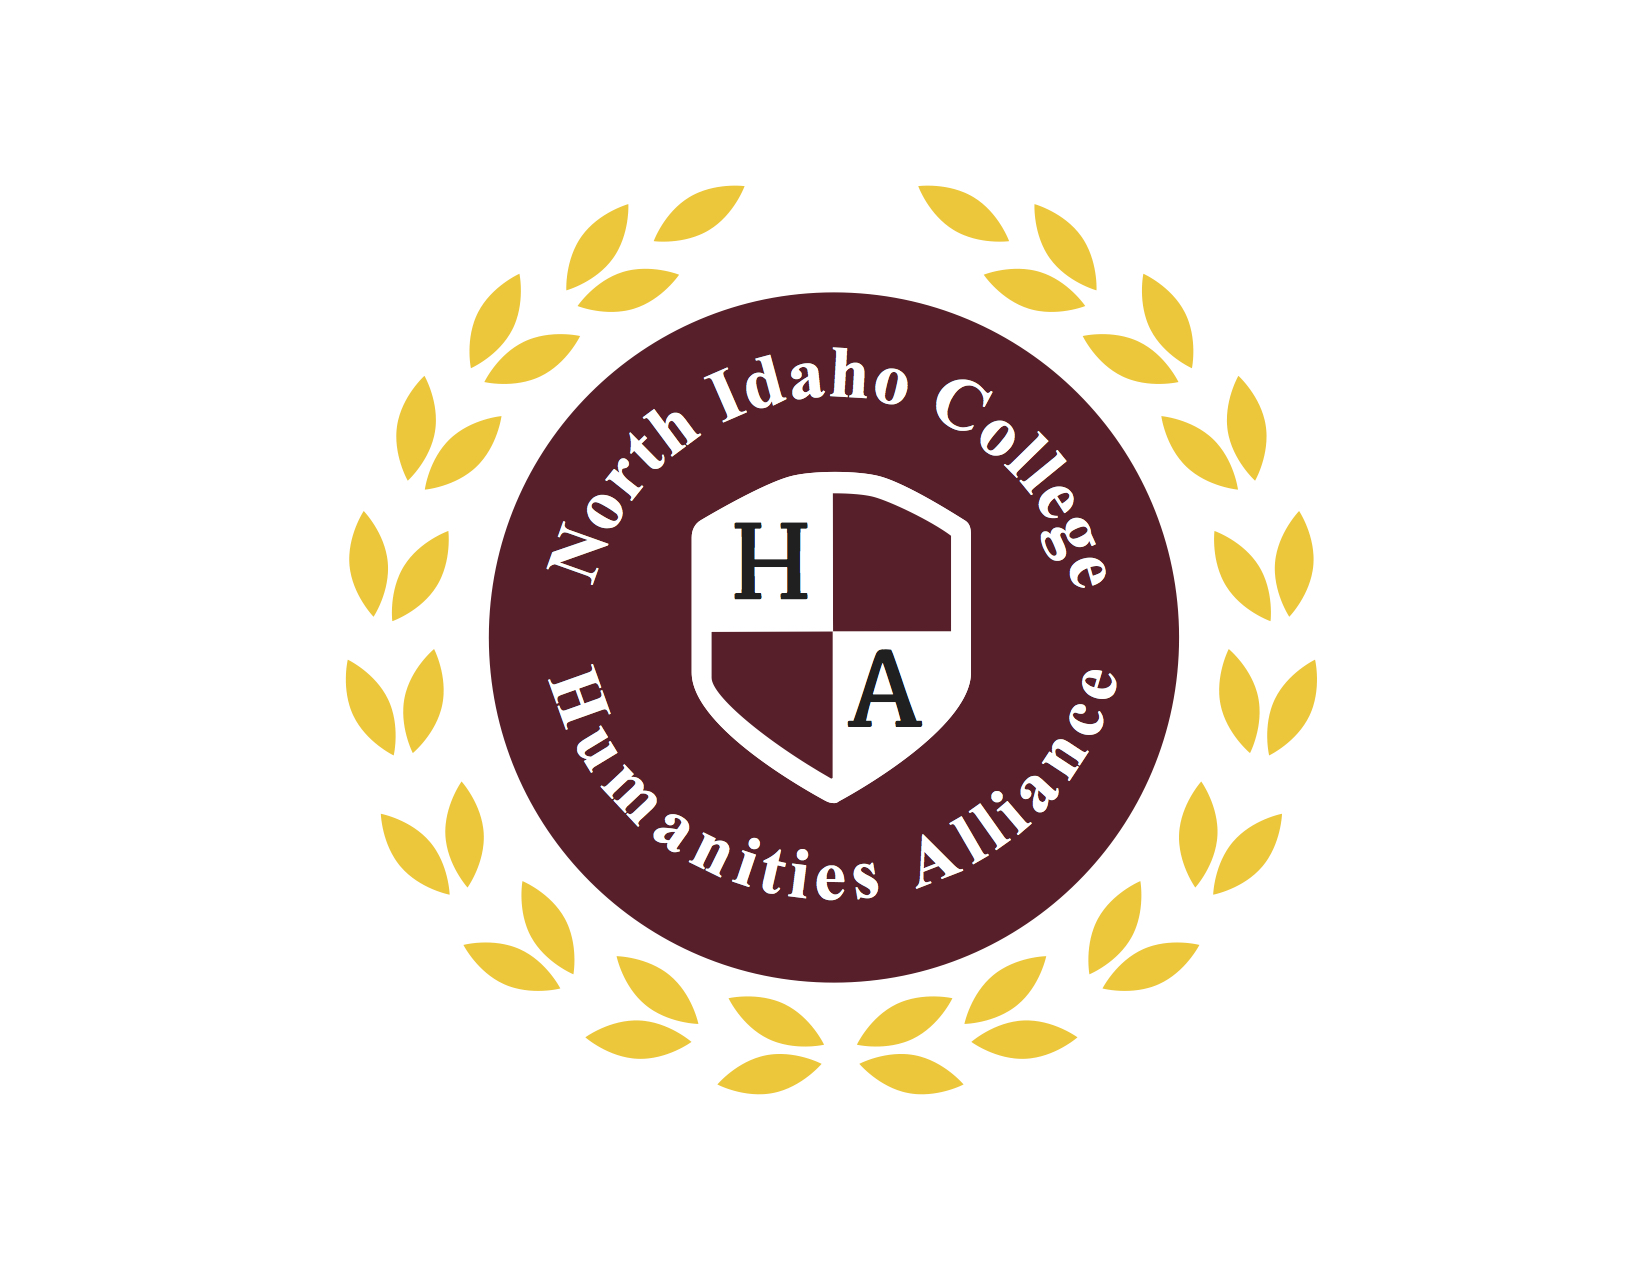 Logo for North Idaho College Humanities Alliance.